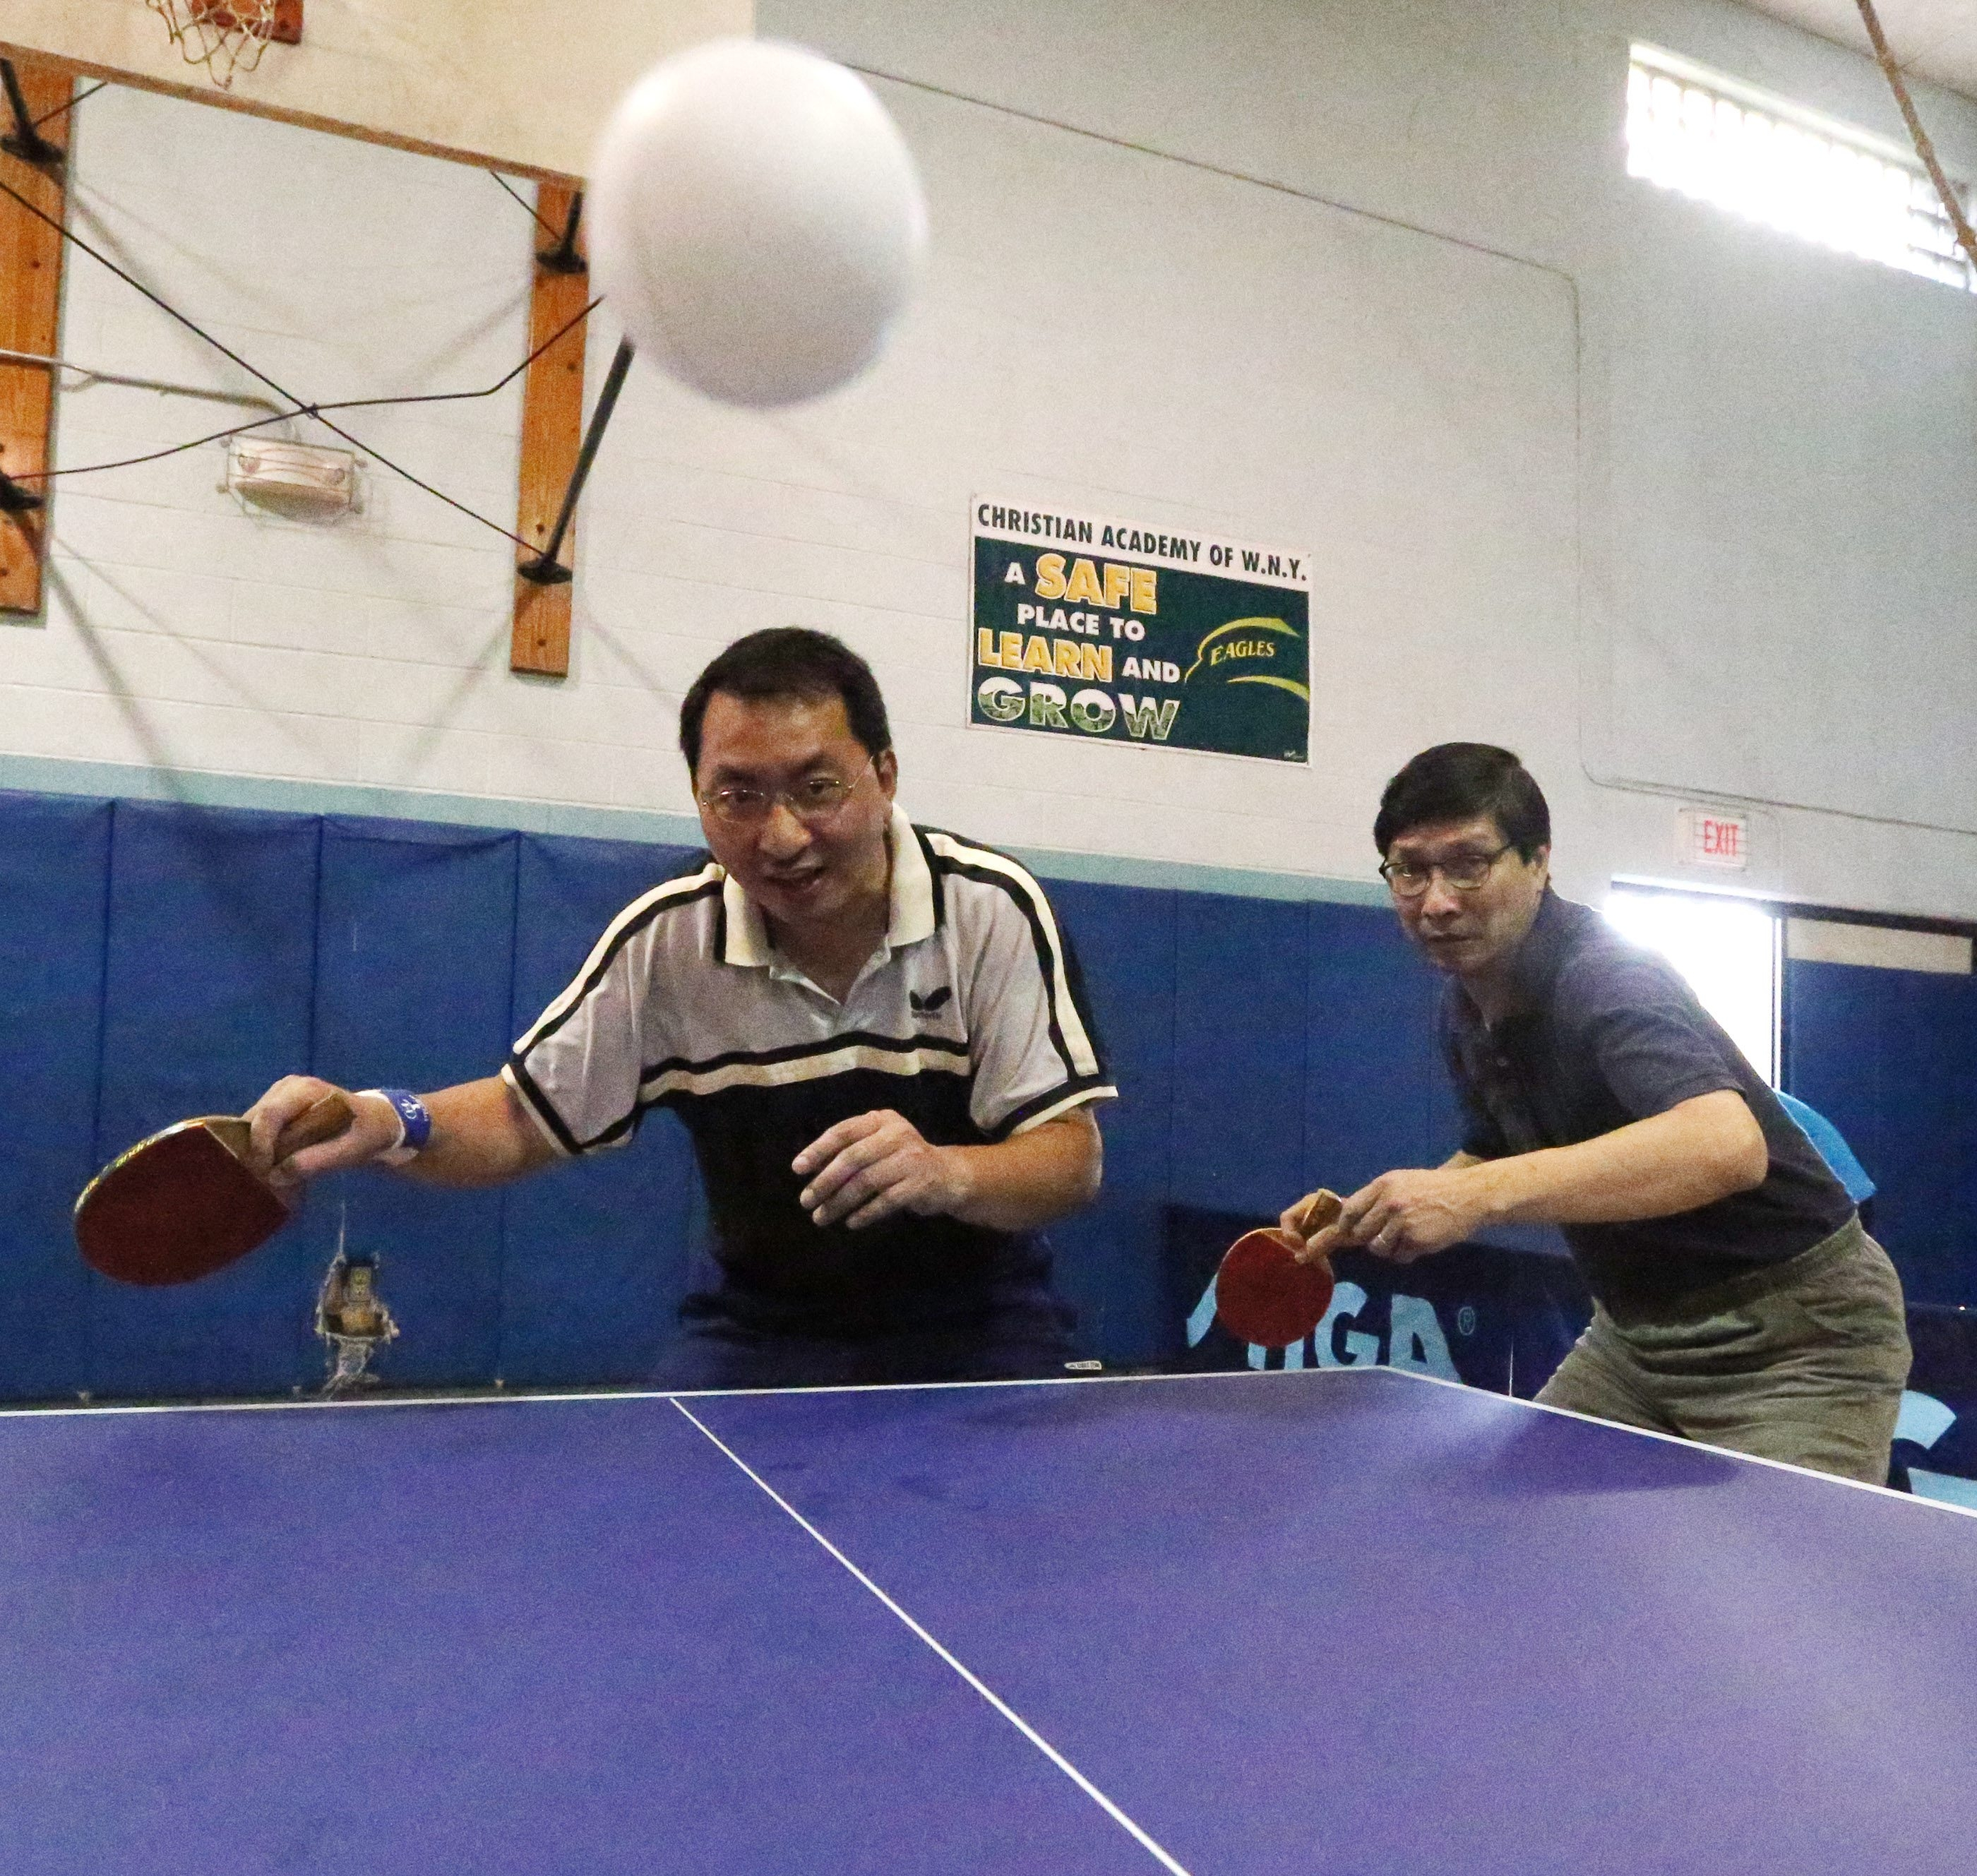 Two Wny Clubs Keep Table Tennis In Play The Buffalo News